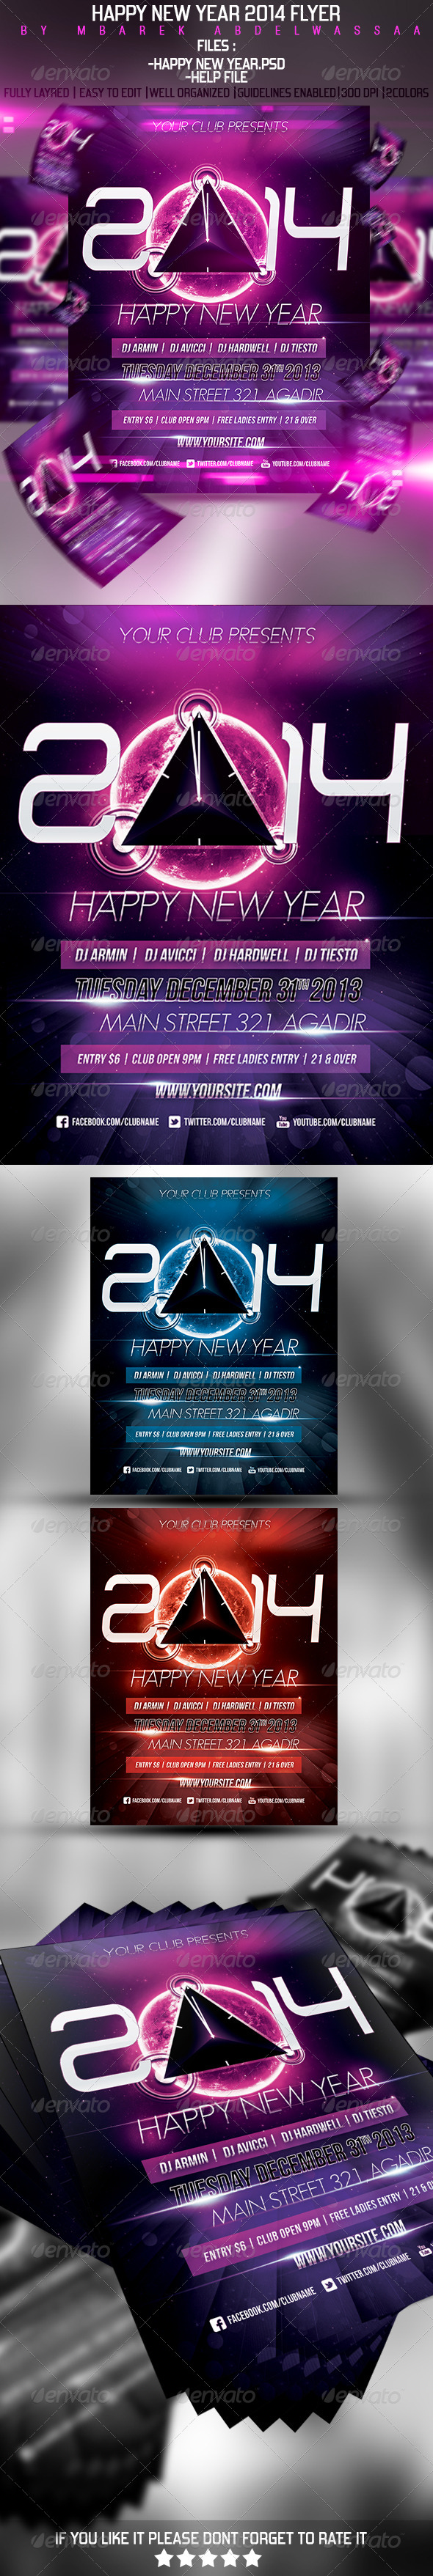 GraphicRiver Happy New Year 2014 Flyer 5996957